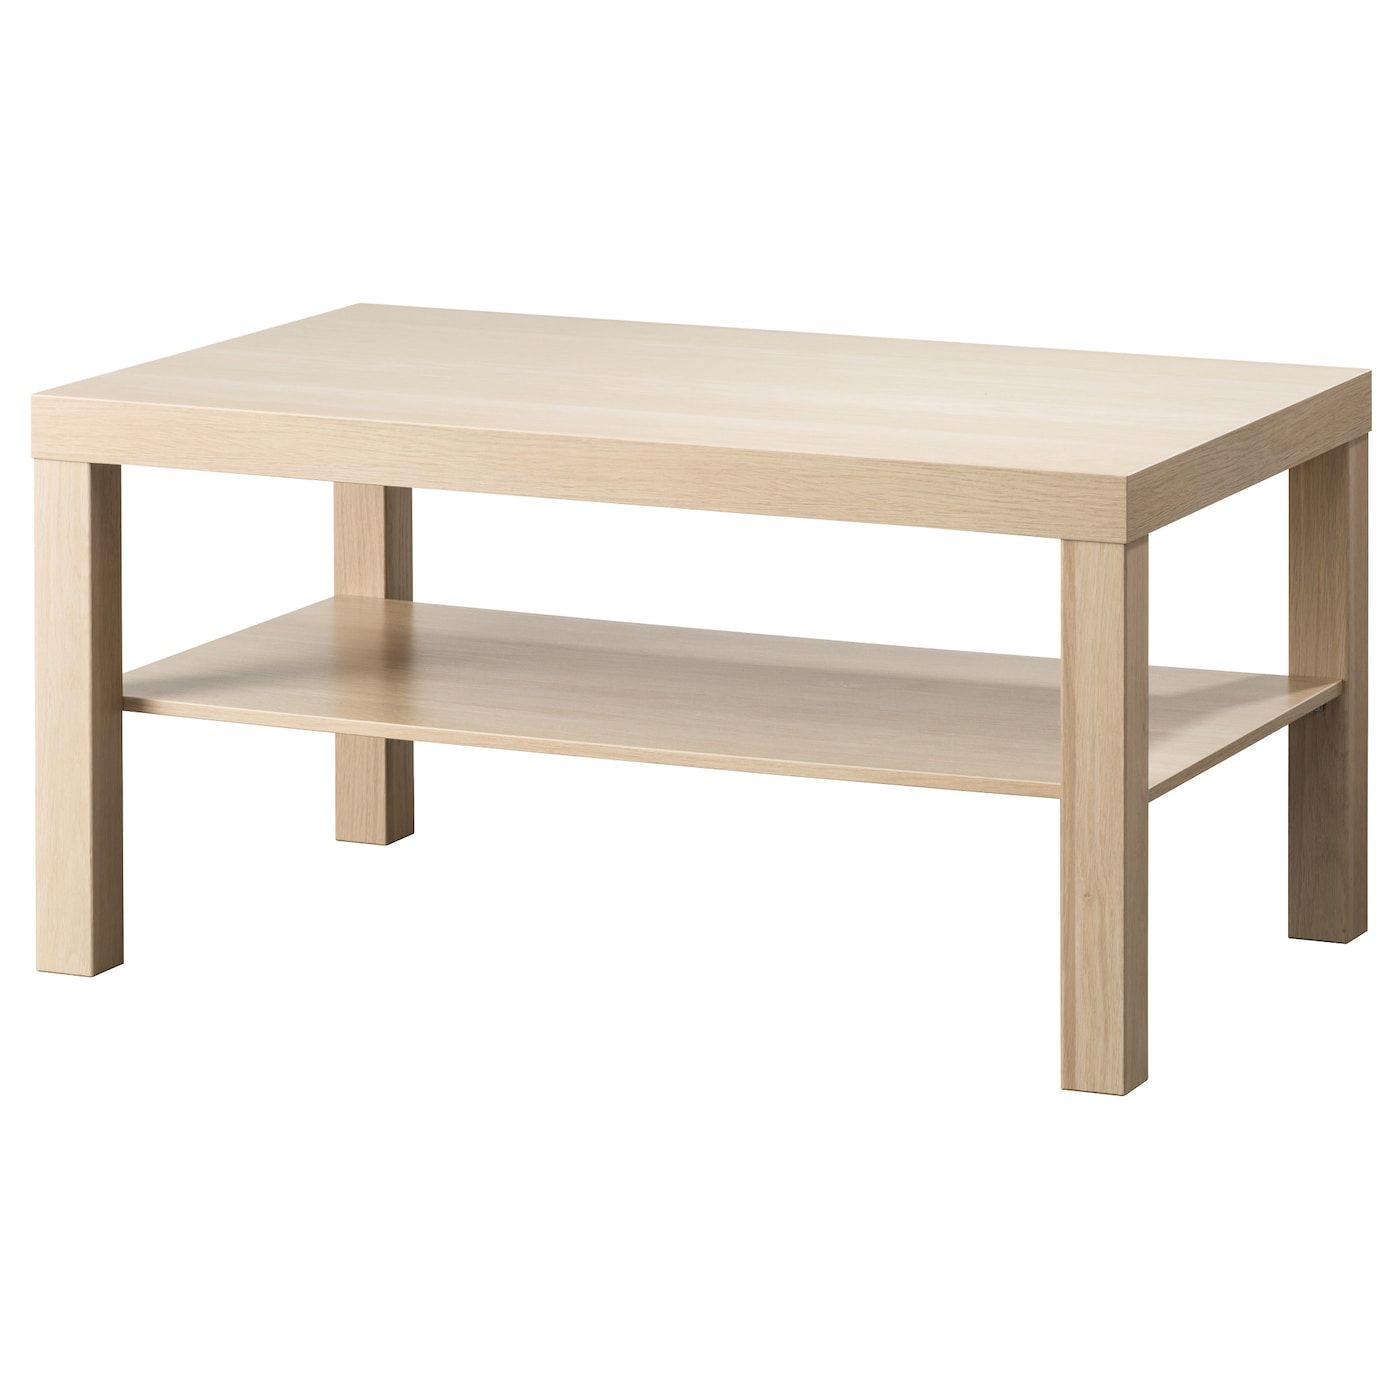 Lack Coffee Table White Stained Oak Effect 35 3 8x21 5 8 Ikea In 2021 Lack Coffee Table Ikea Lack Coffee Table Coffee Table [ 1400 x 1400 Pixel ]